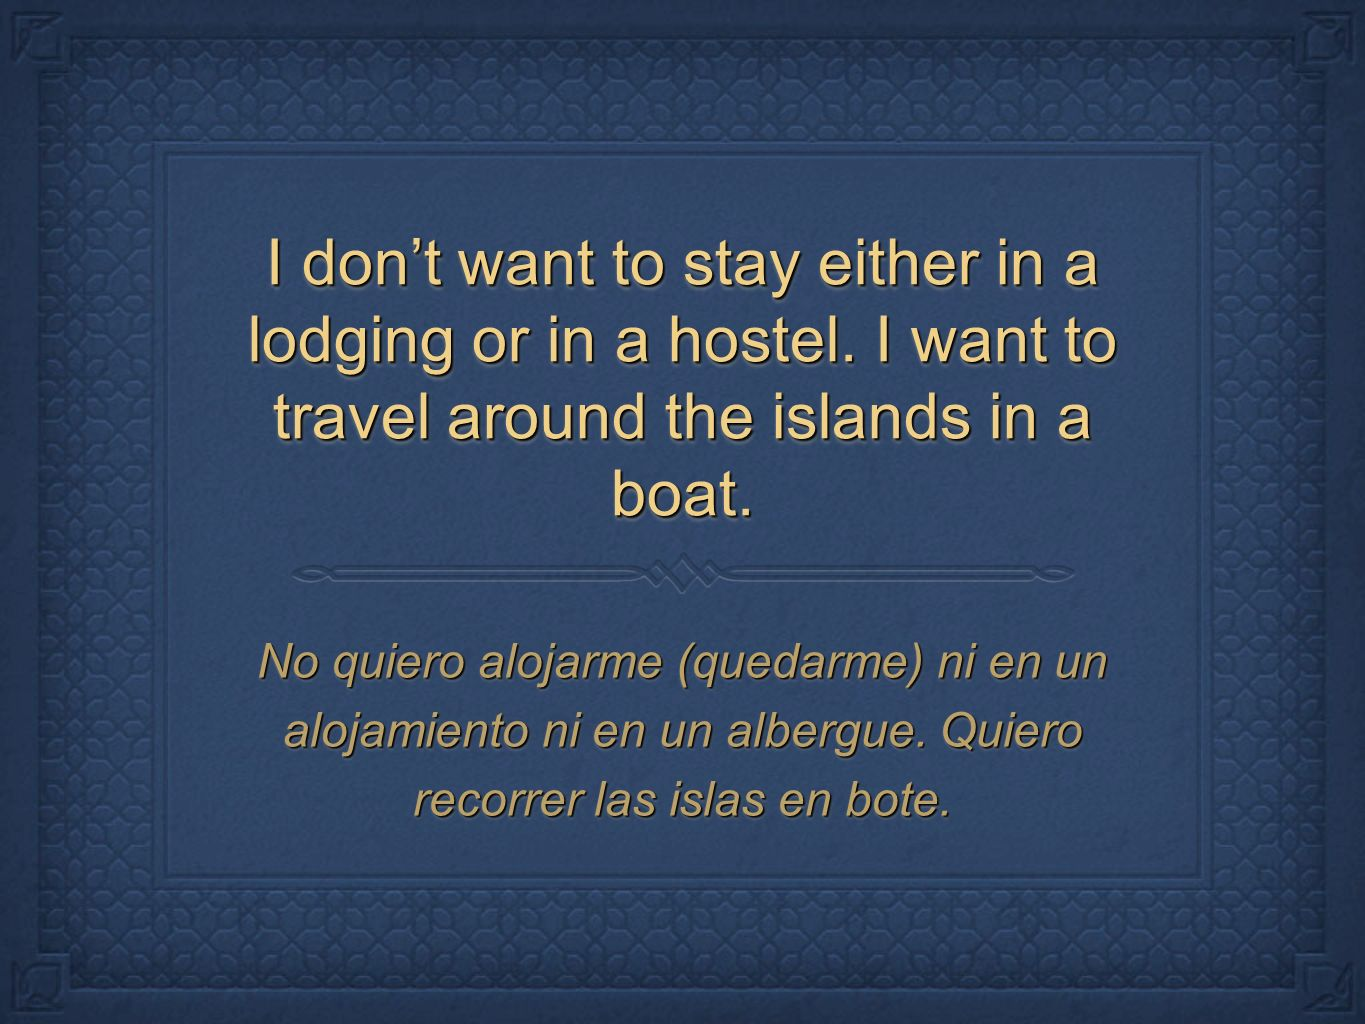 I don't want to stay either in a lodging or in a hostel